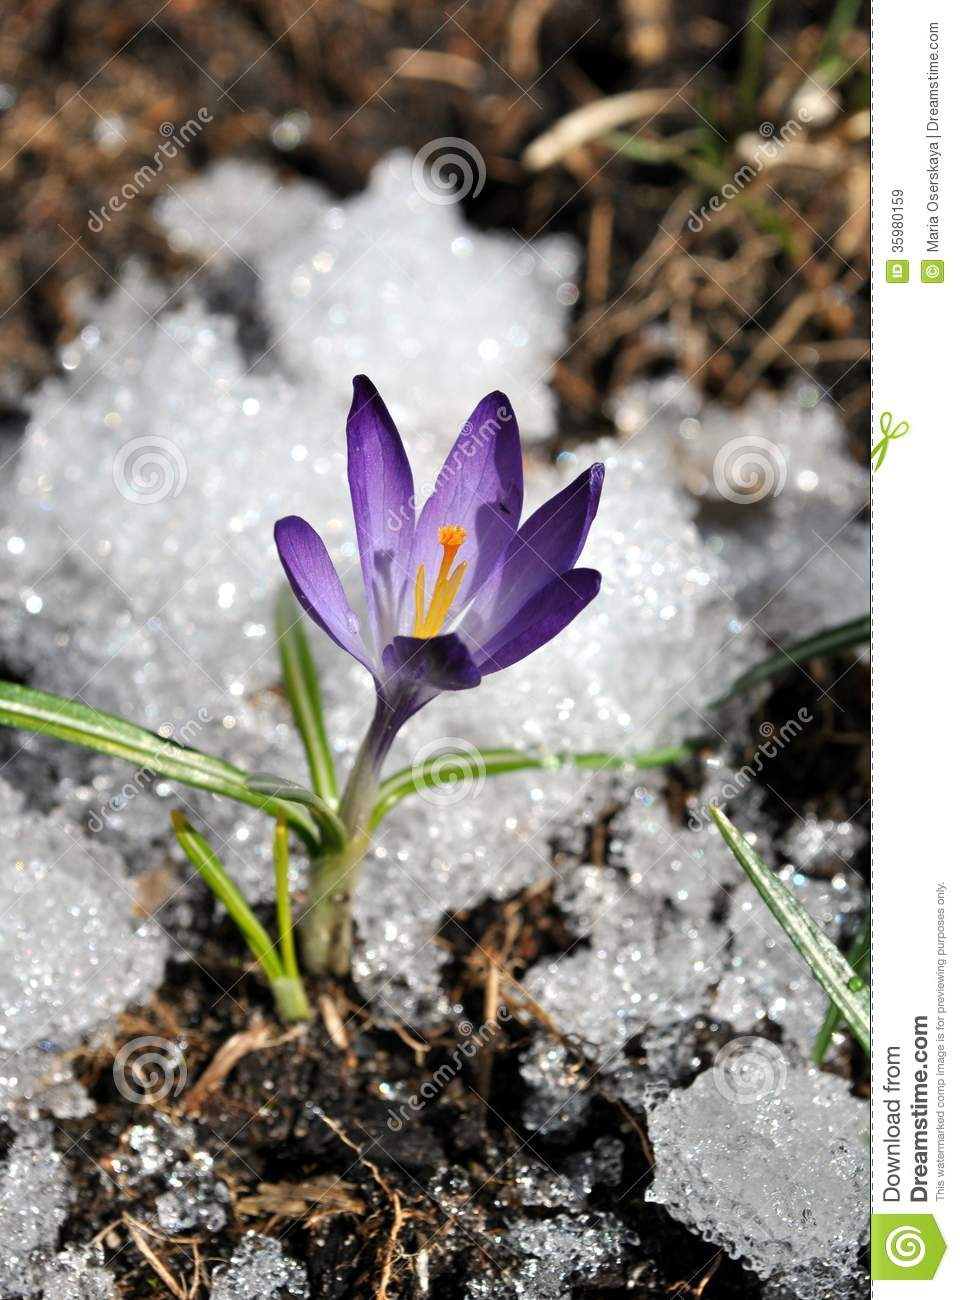 The Weather Continues Could This Be The First Flower Of